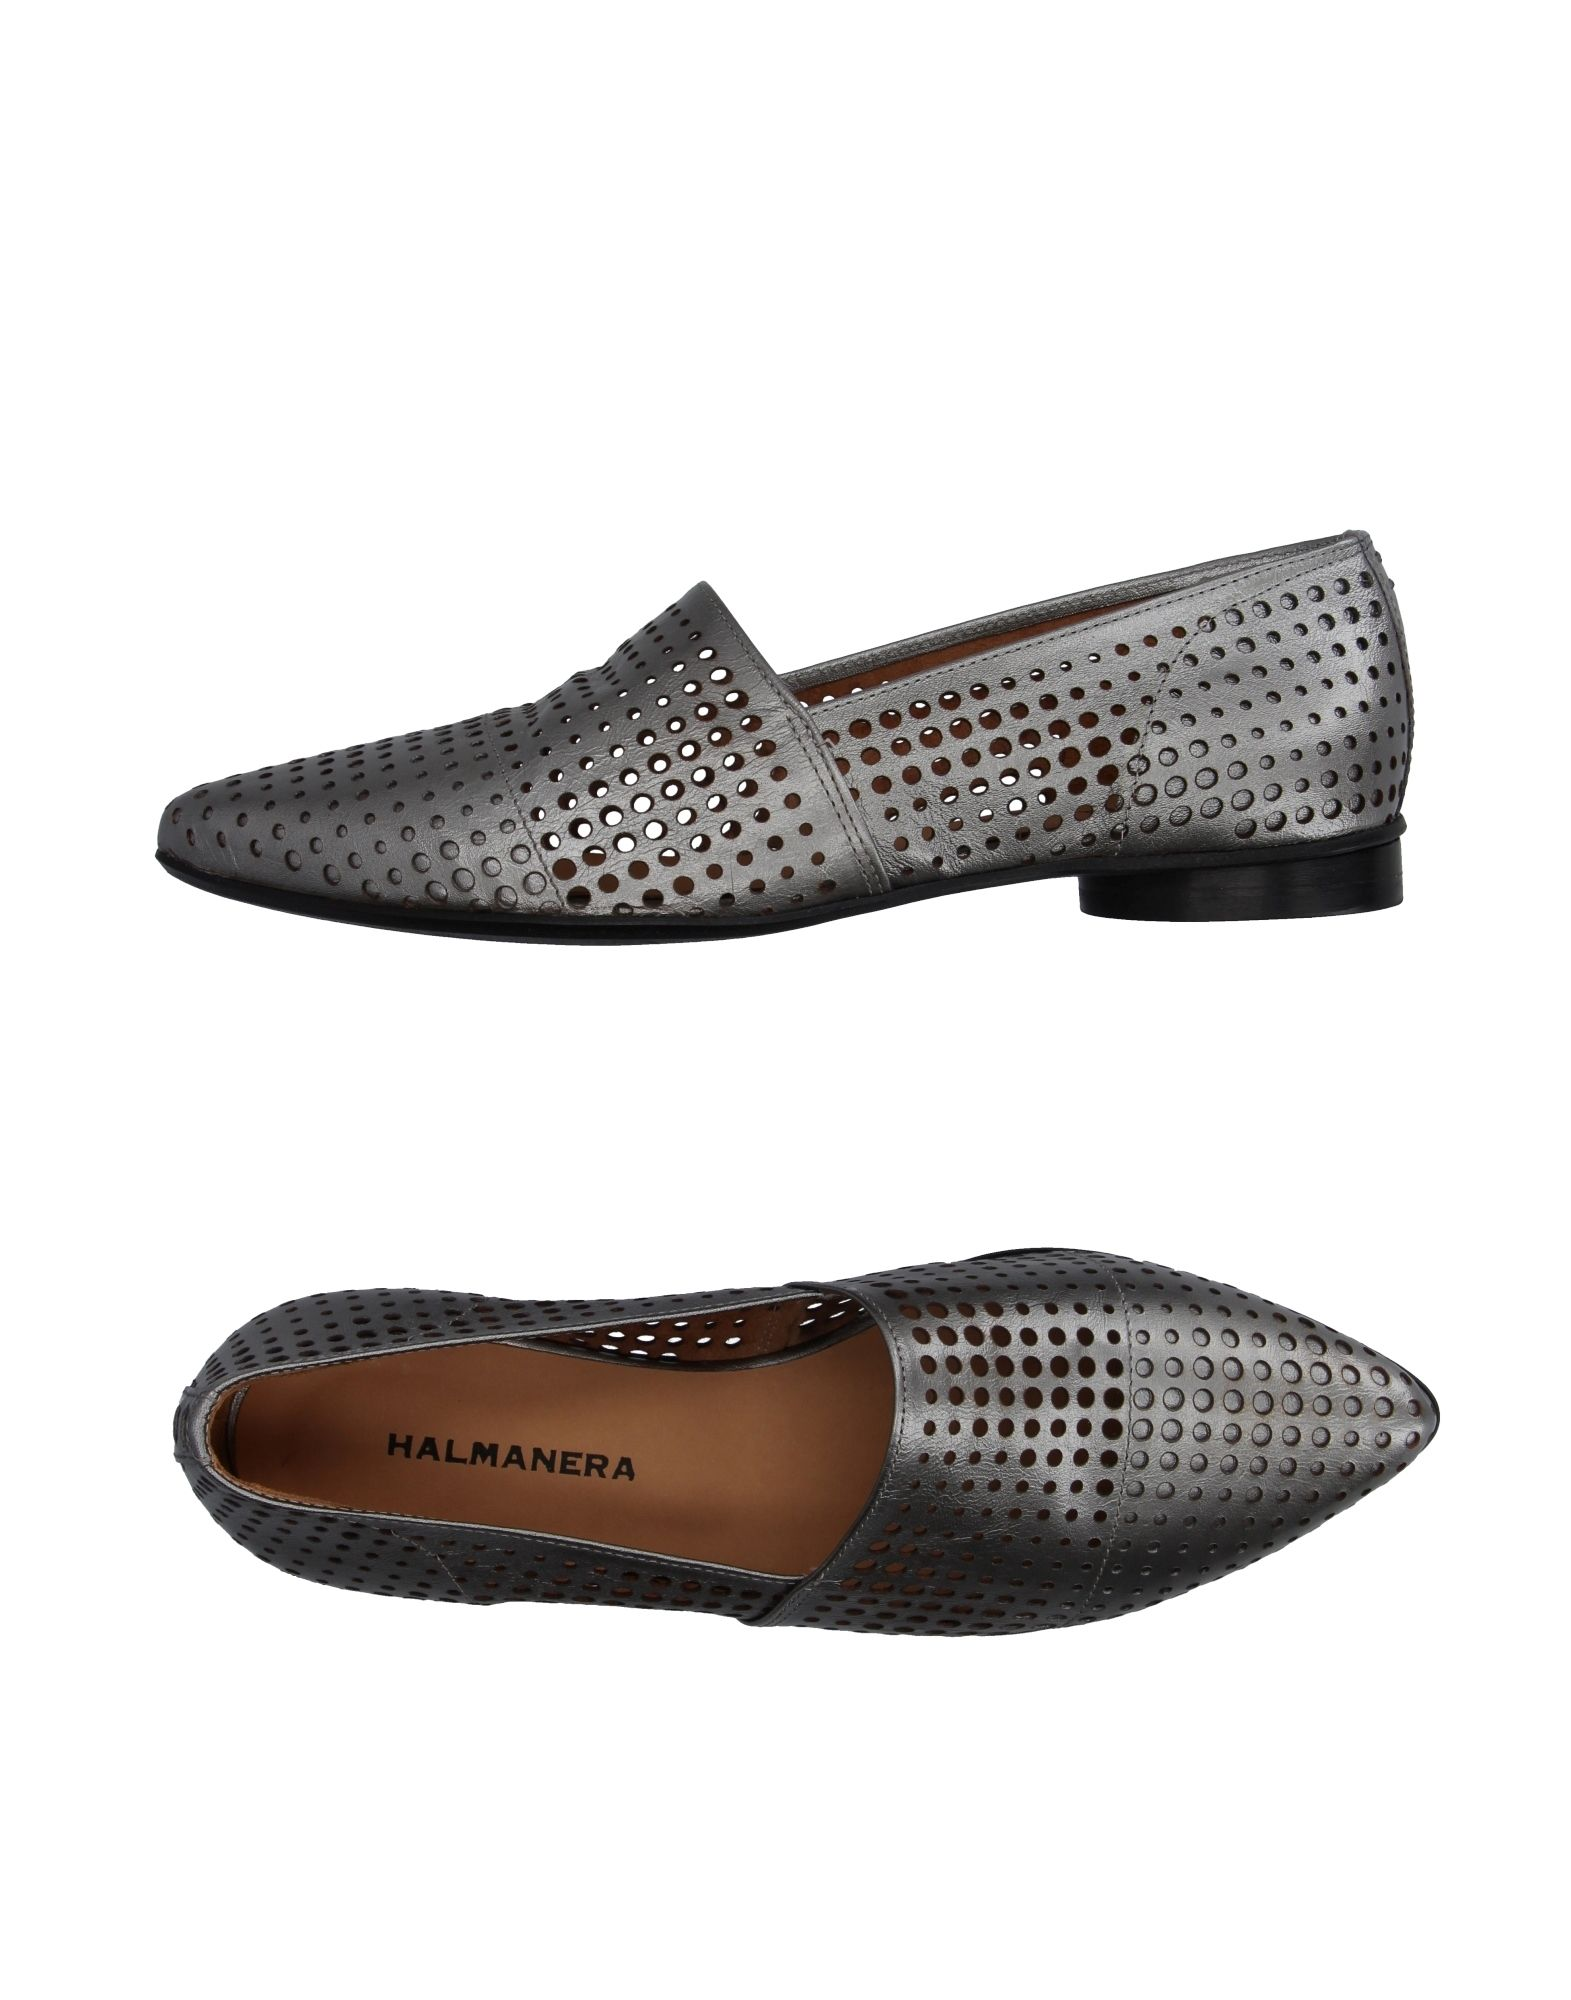 HALMANERA Loafers in Grey